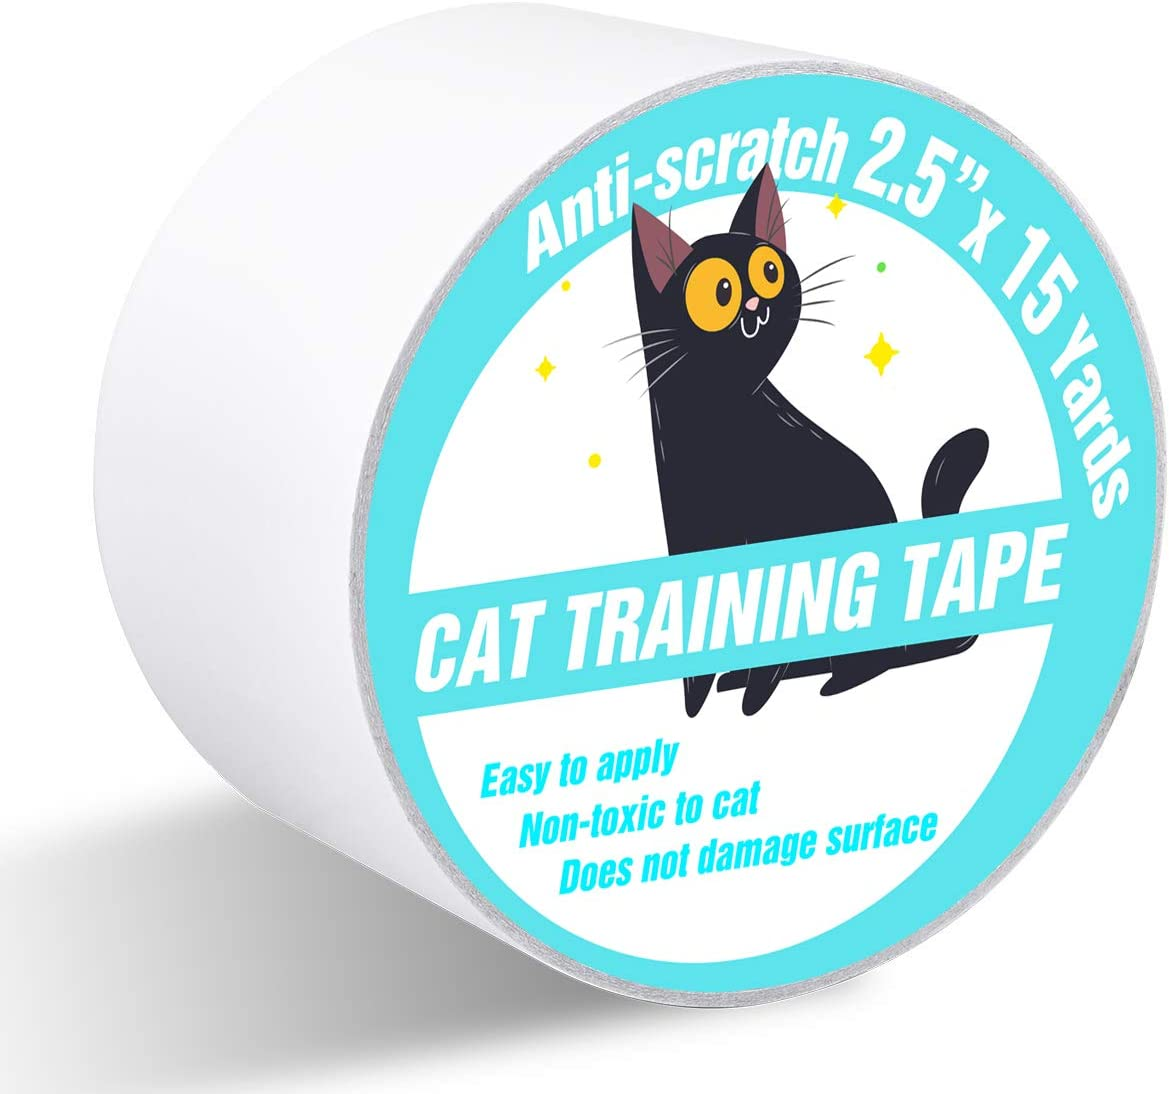 Polarduck Anti Cat Scratch Tape, 2.5 inches x 15 Yards Cat Training Tape, 100% Transparent Clear Double Sided Cat Scratch Deterrent Tape, Furniture Protector for Couch, Carpet, Doors, Pet & Kid Safe